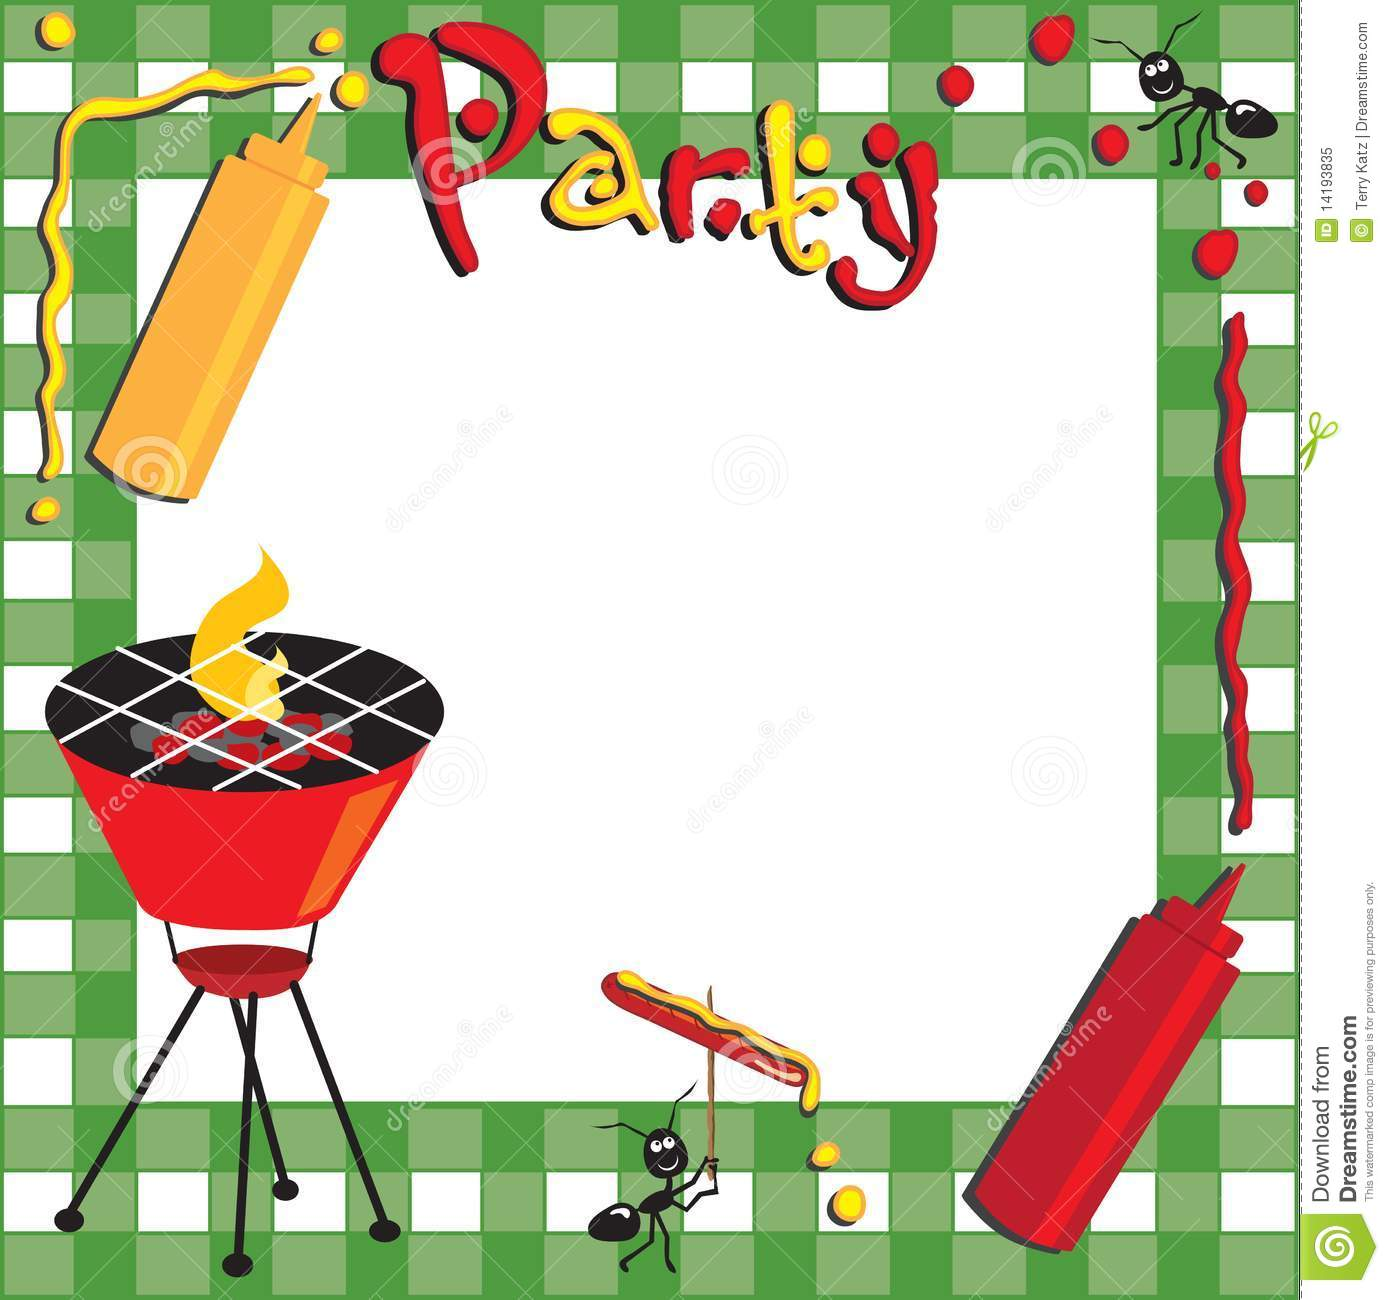 BBQ Party Invitation stock photo. Image of party, cooking - 13826688